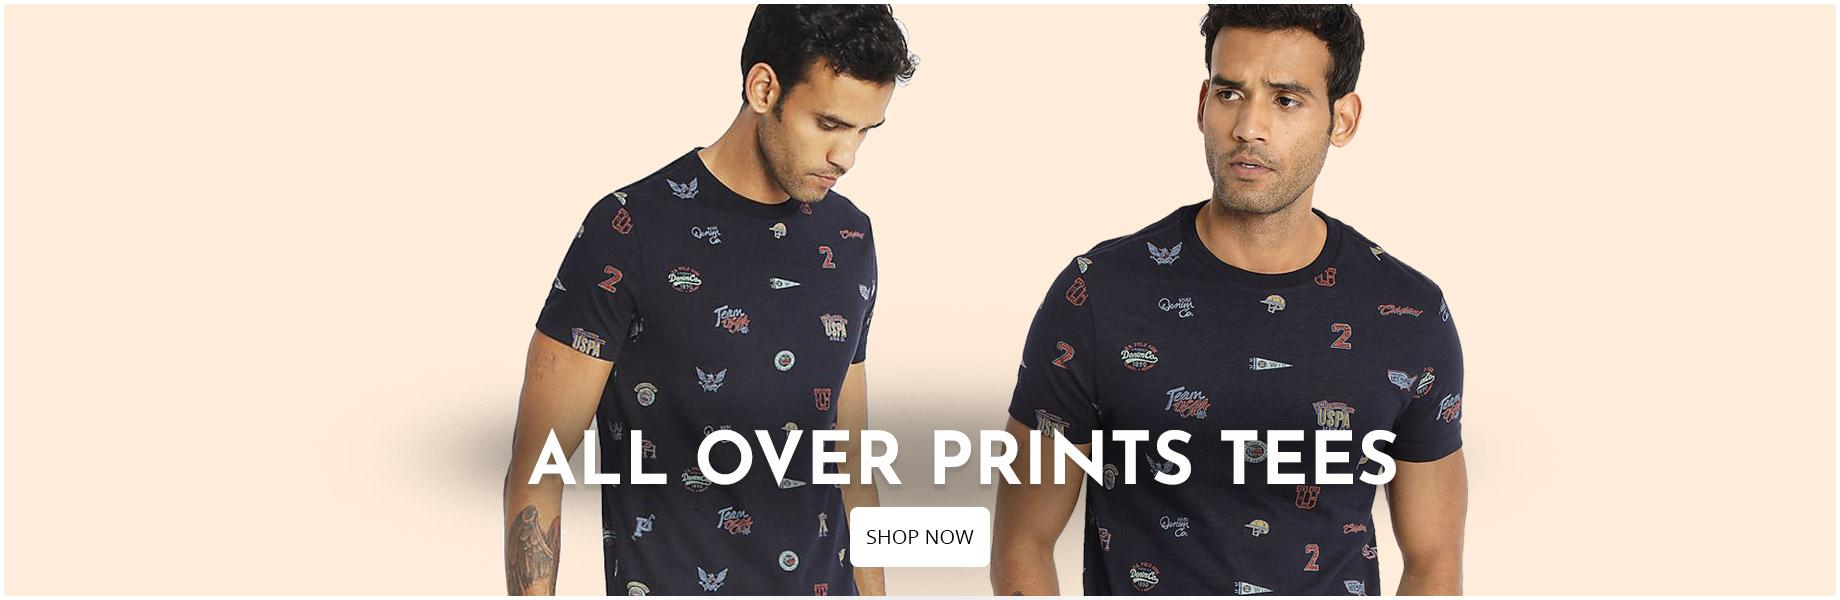 All-Over-Prints-TEES